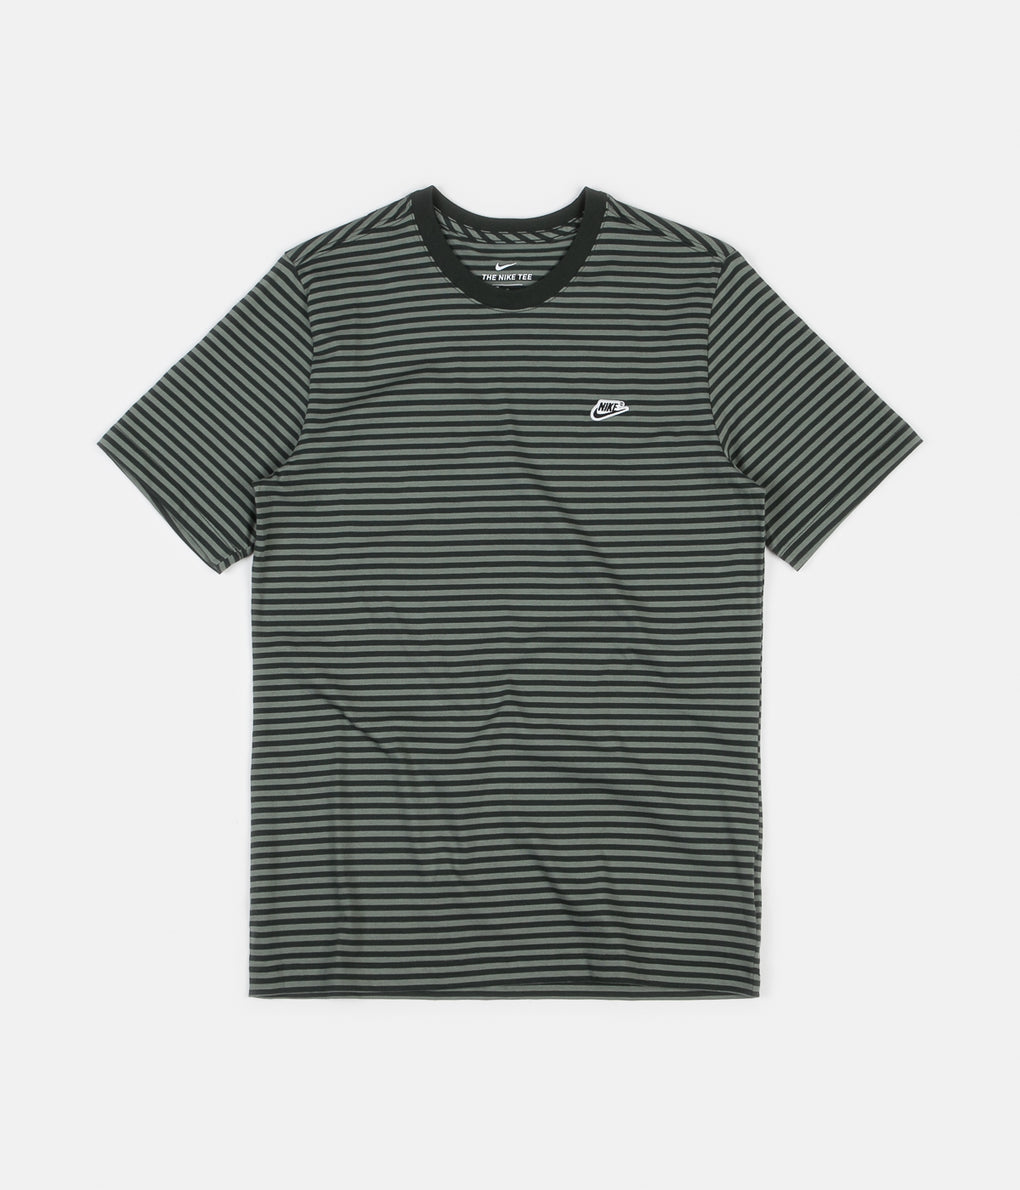 Nike Mini Futura 4 T-Shirt - Outdoor Green / Outdoor Green / Black